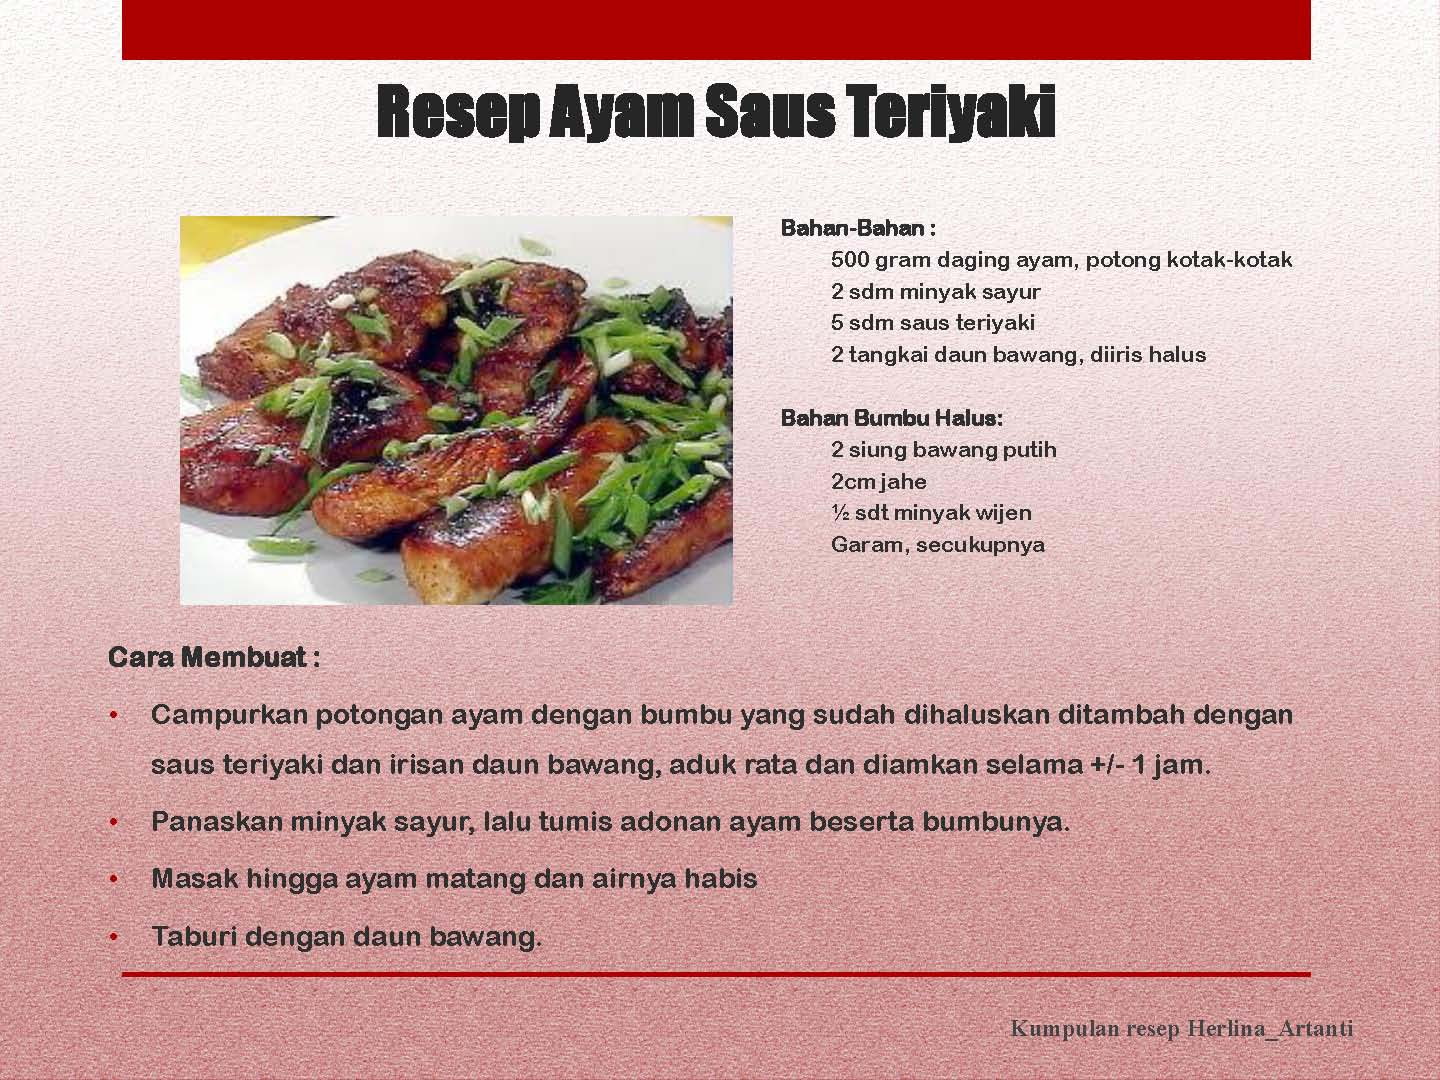 juhi resep comment on this picture resep ayam saus teriyaki